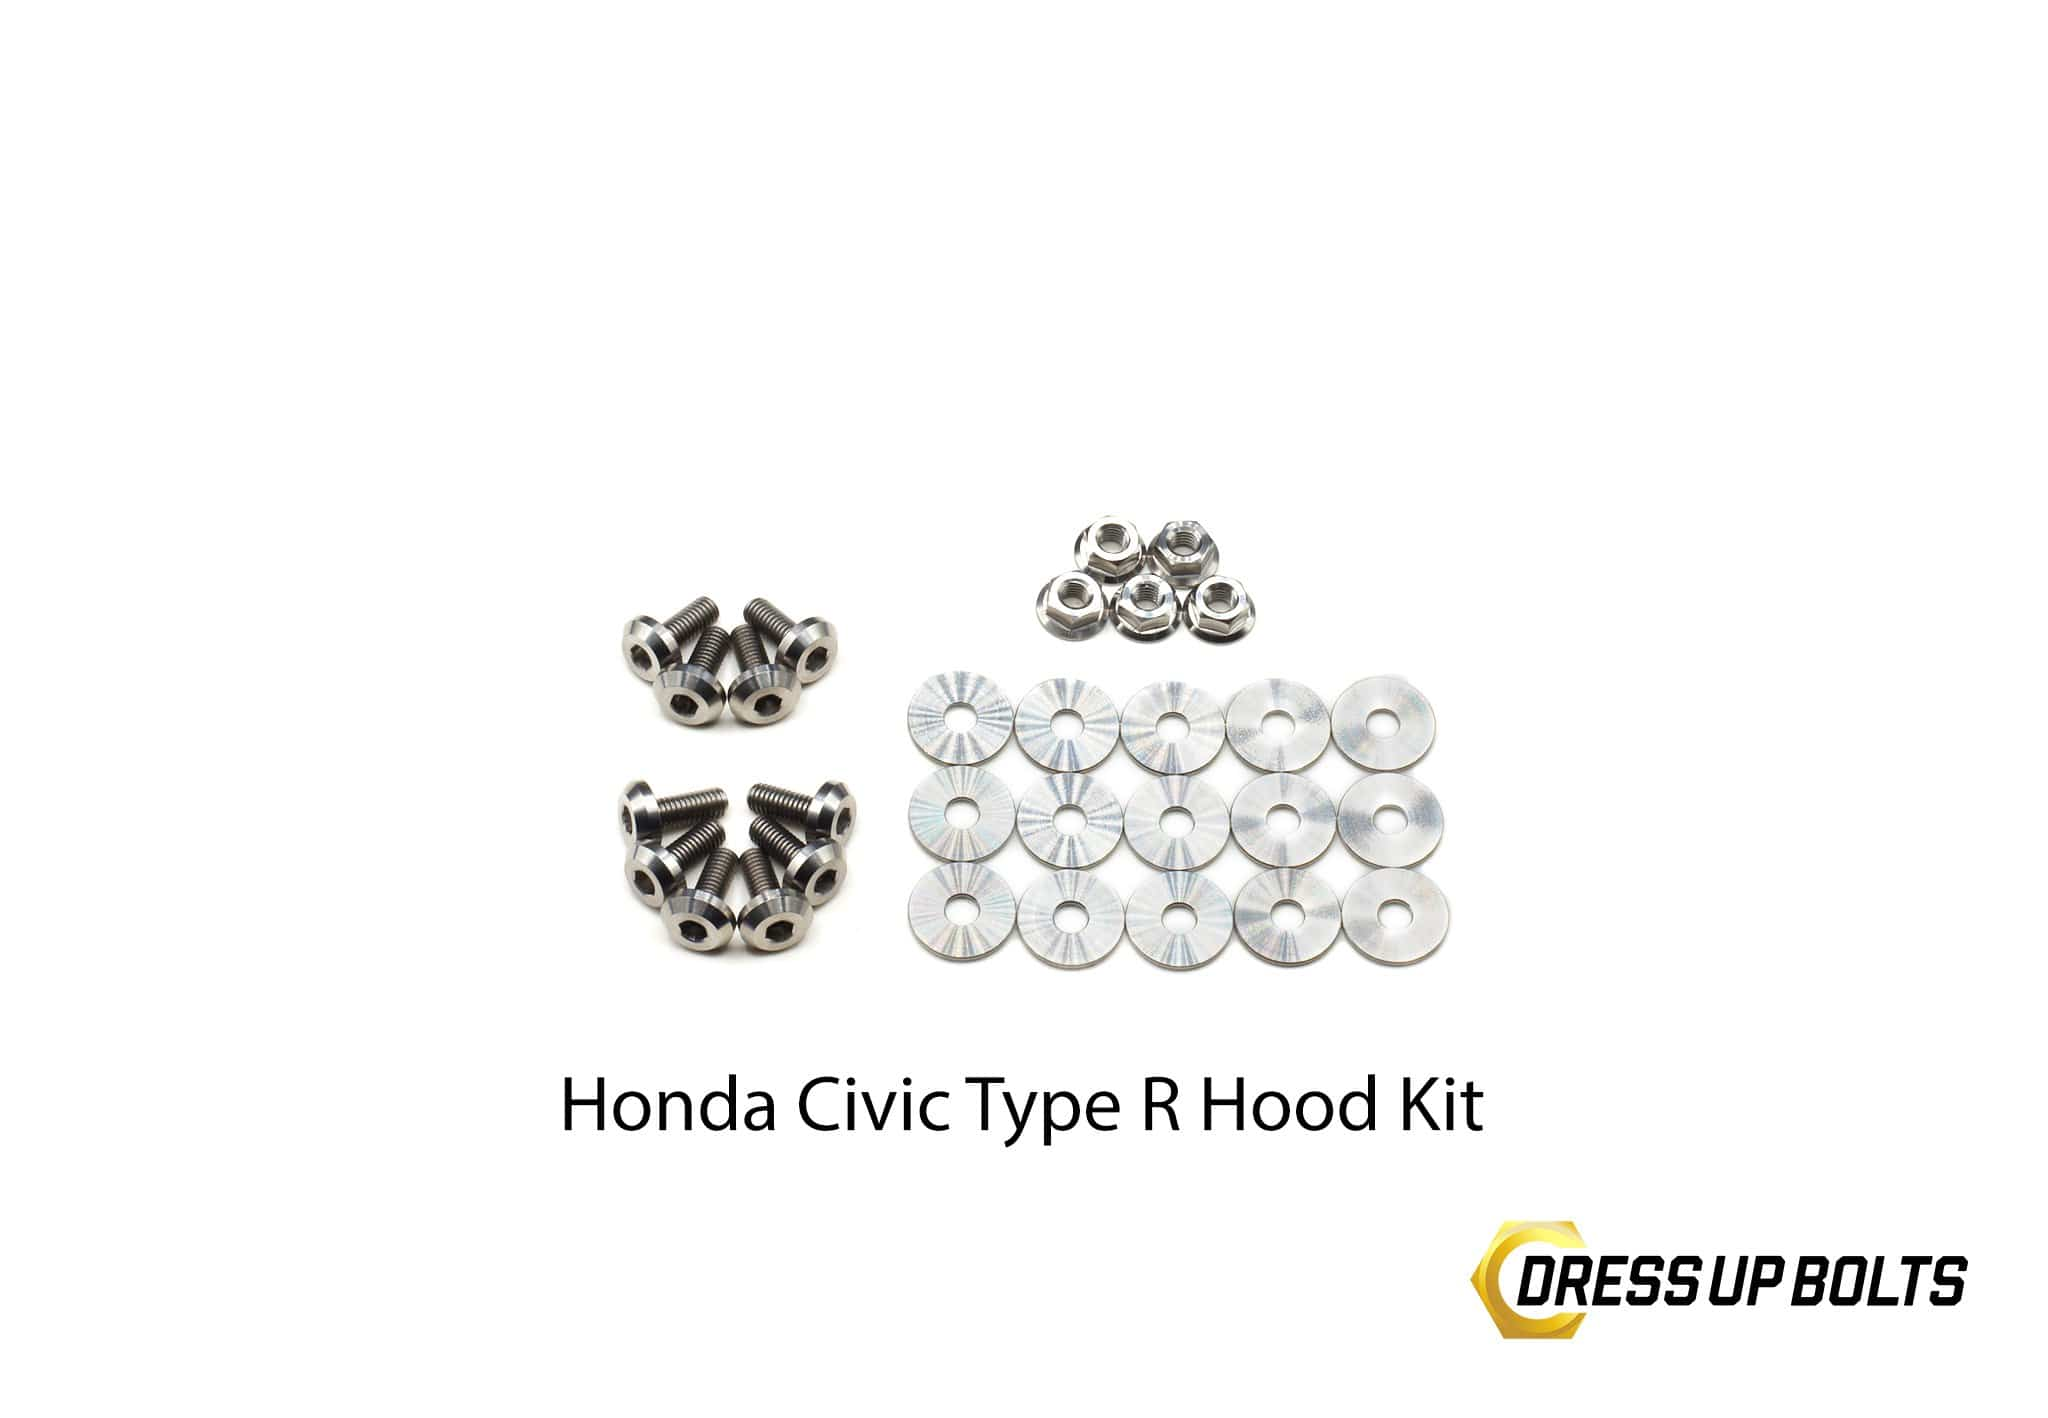 Honda Civic Type R (2017-2019) Titanium Dress Up Bolts Hood Kit - DressUpBolts.com